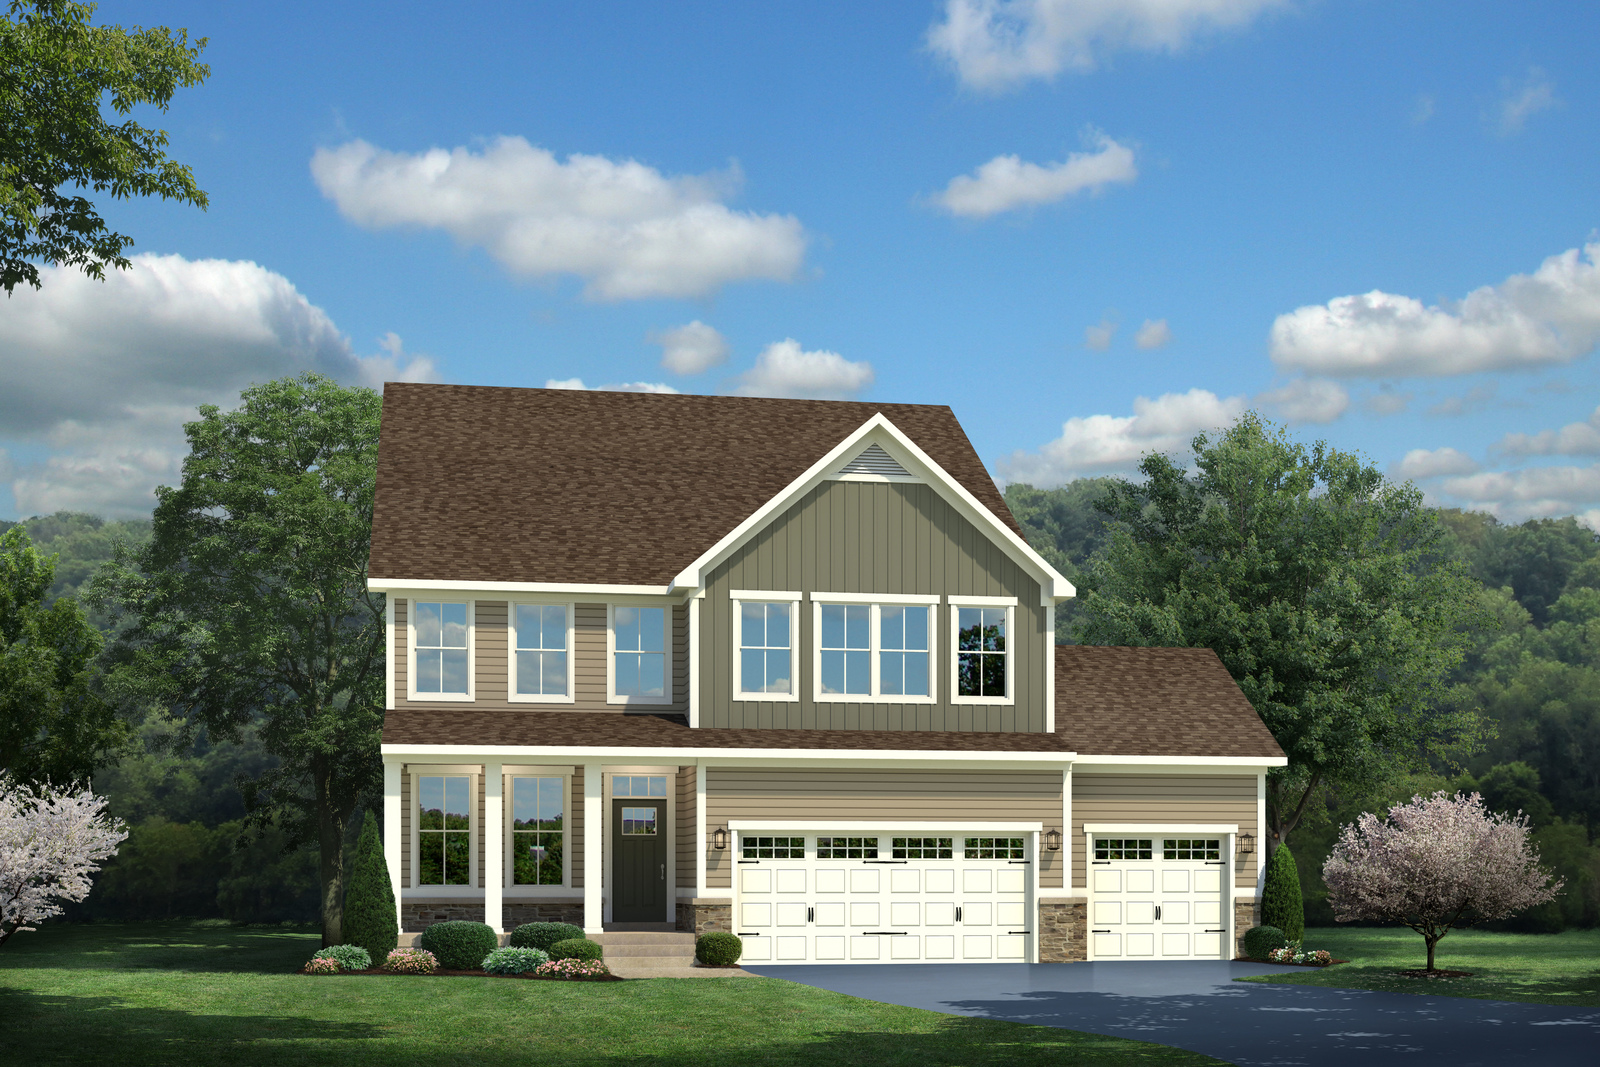 New hayworth home model for sale heartland homes for Heartland house